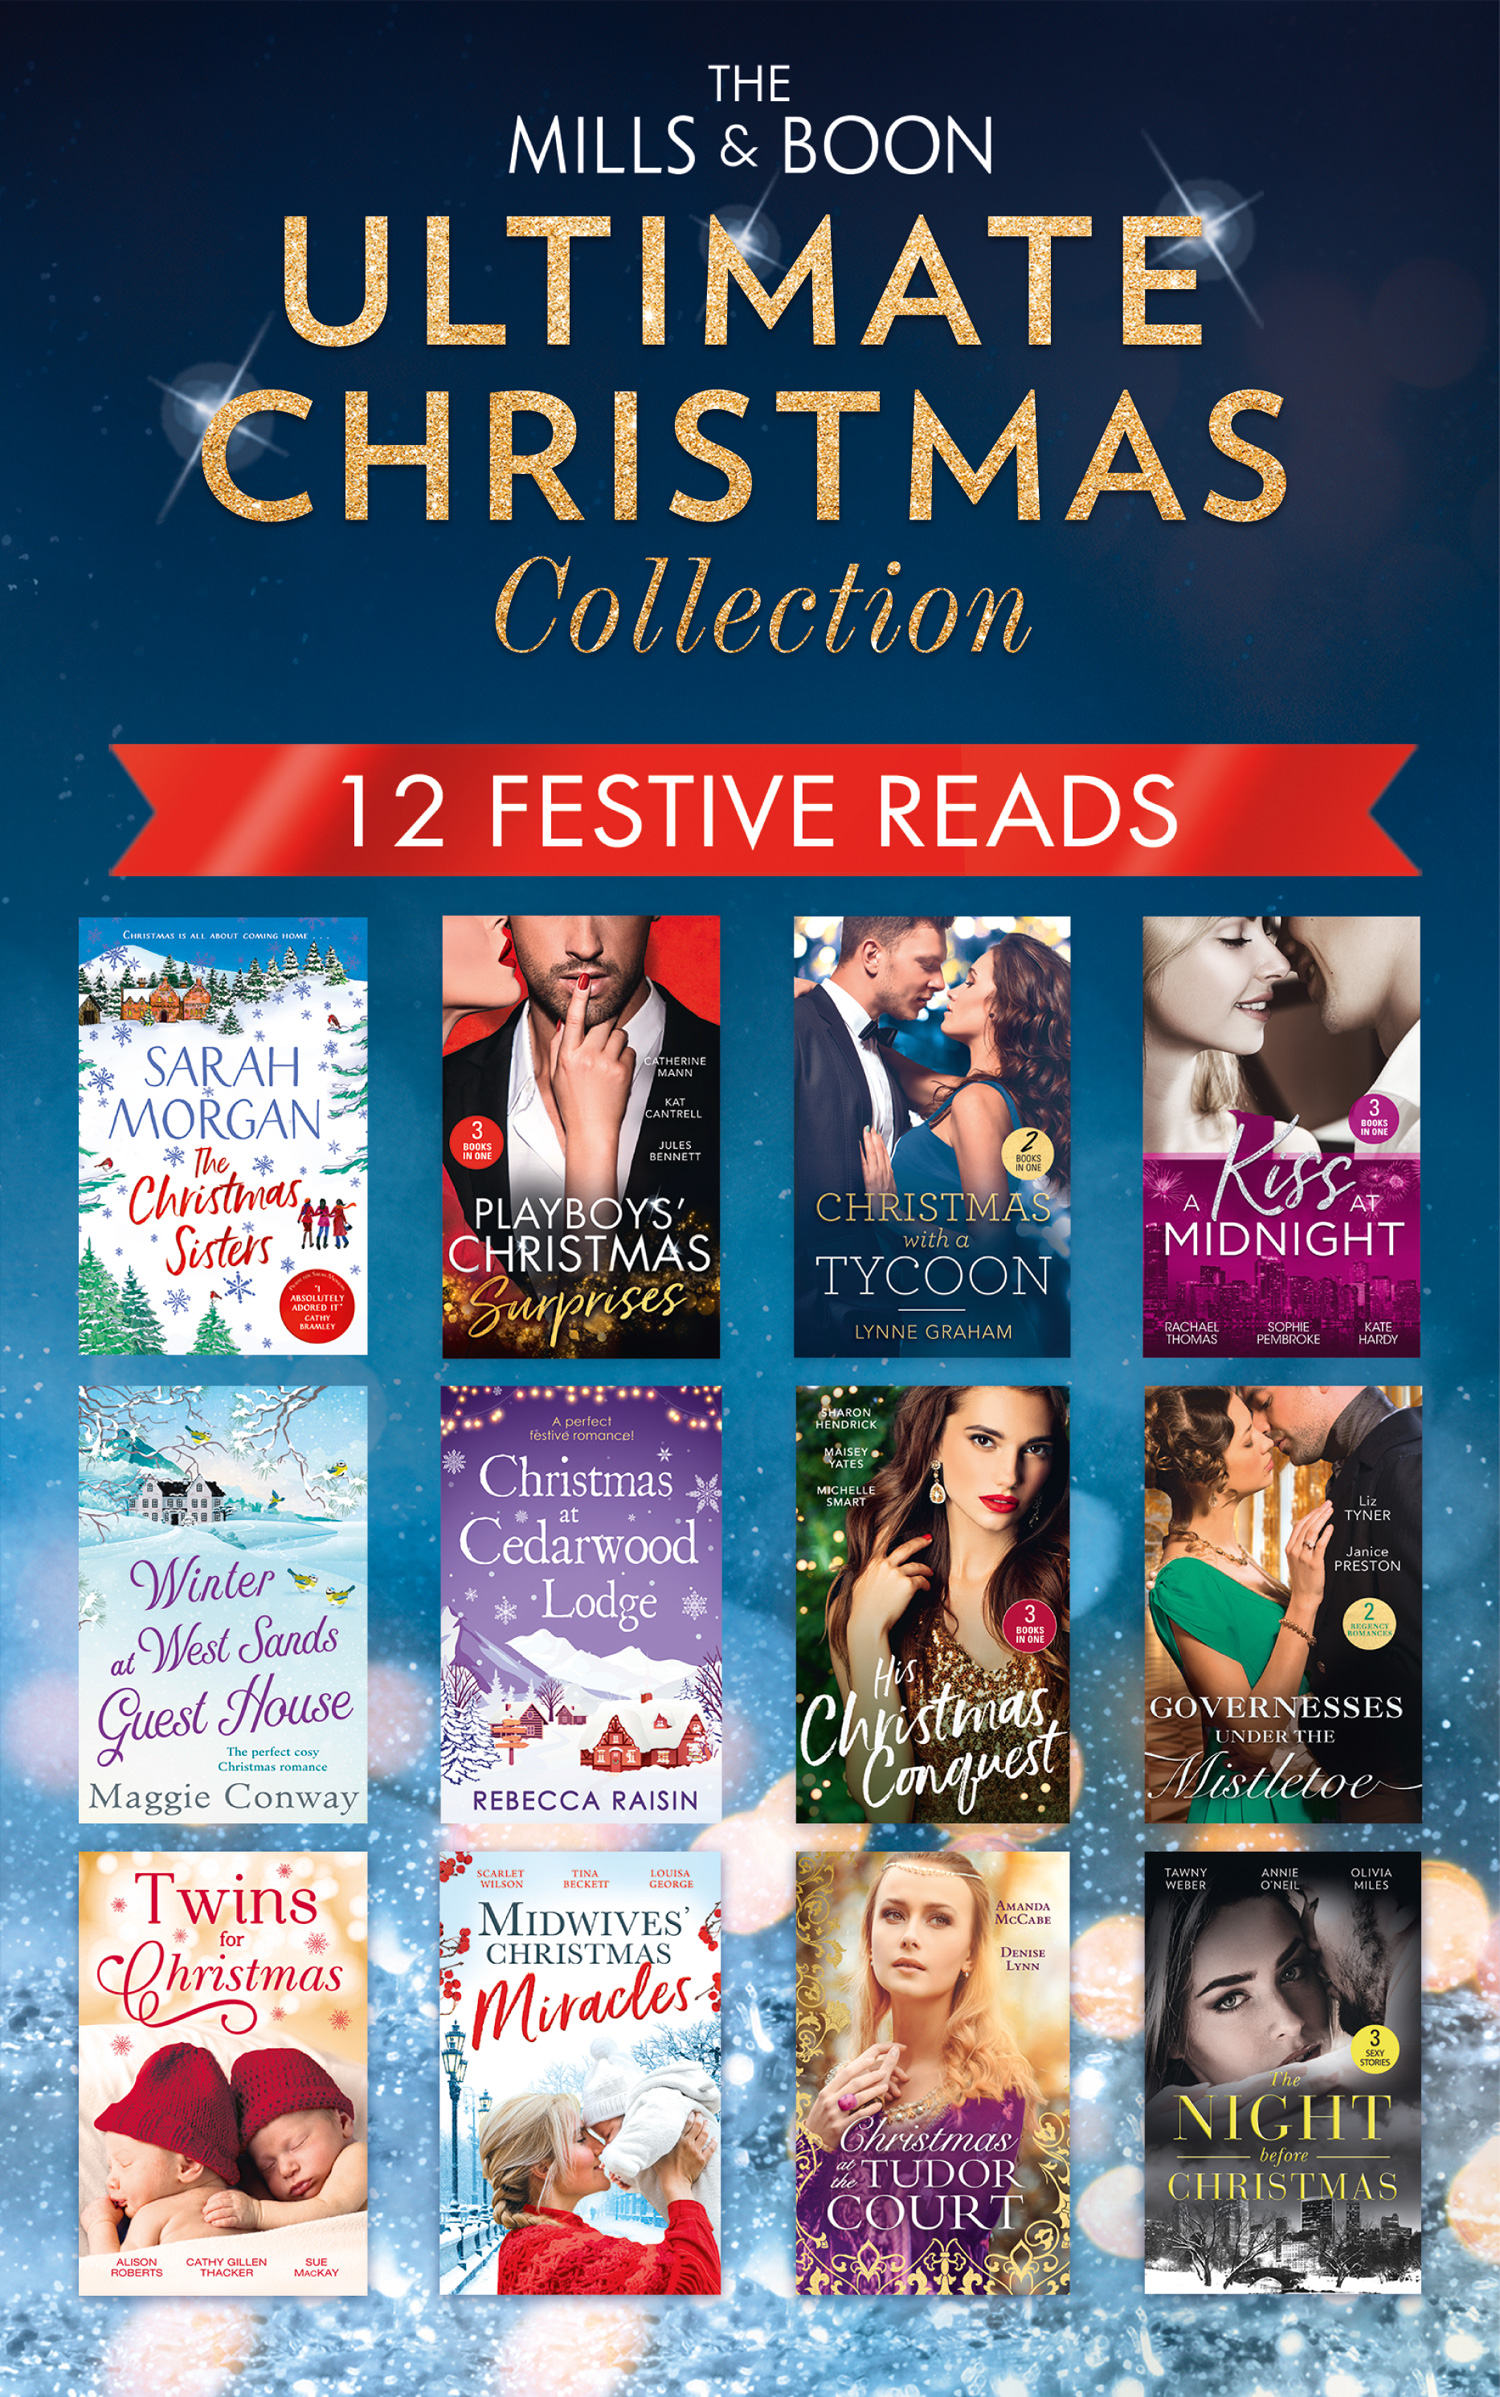 The Mills & Boon Ultimate Christmas Collection